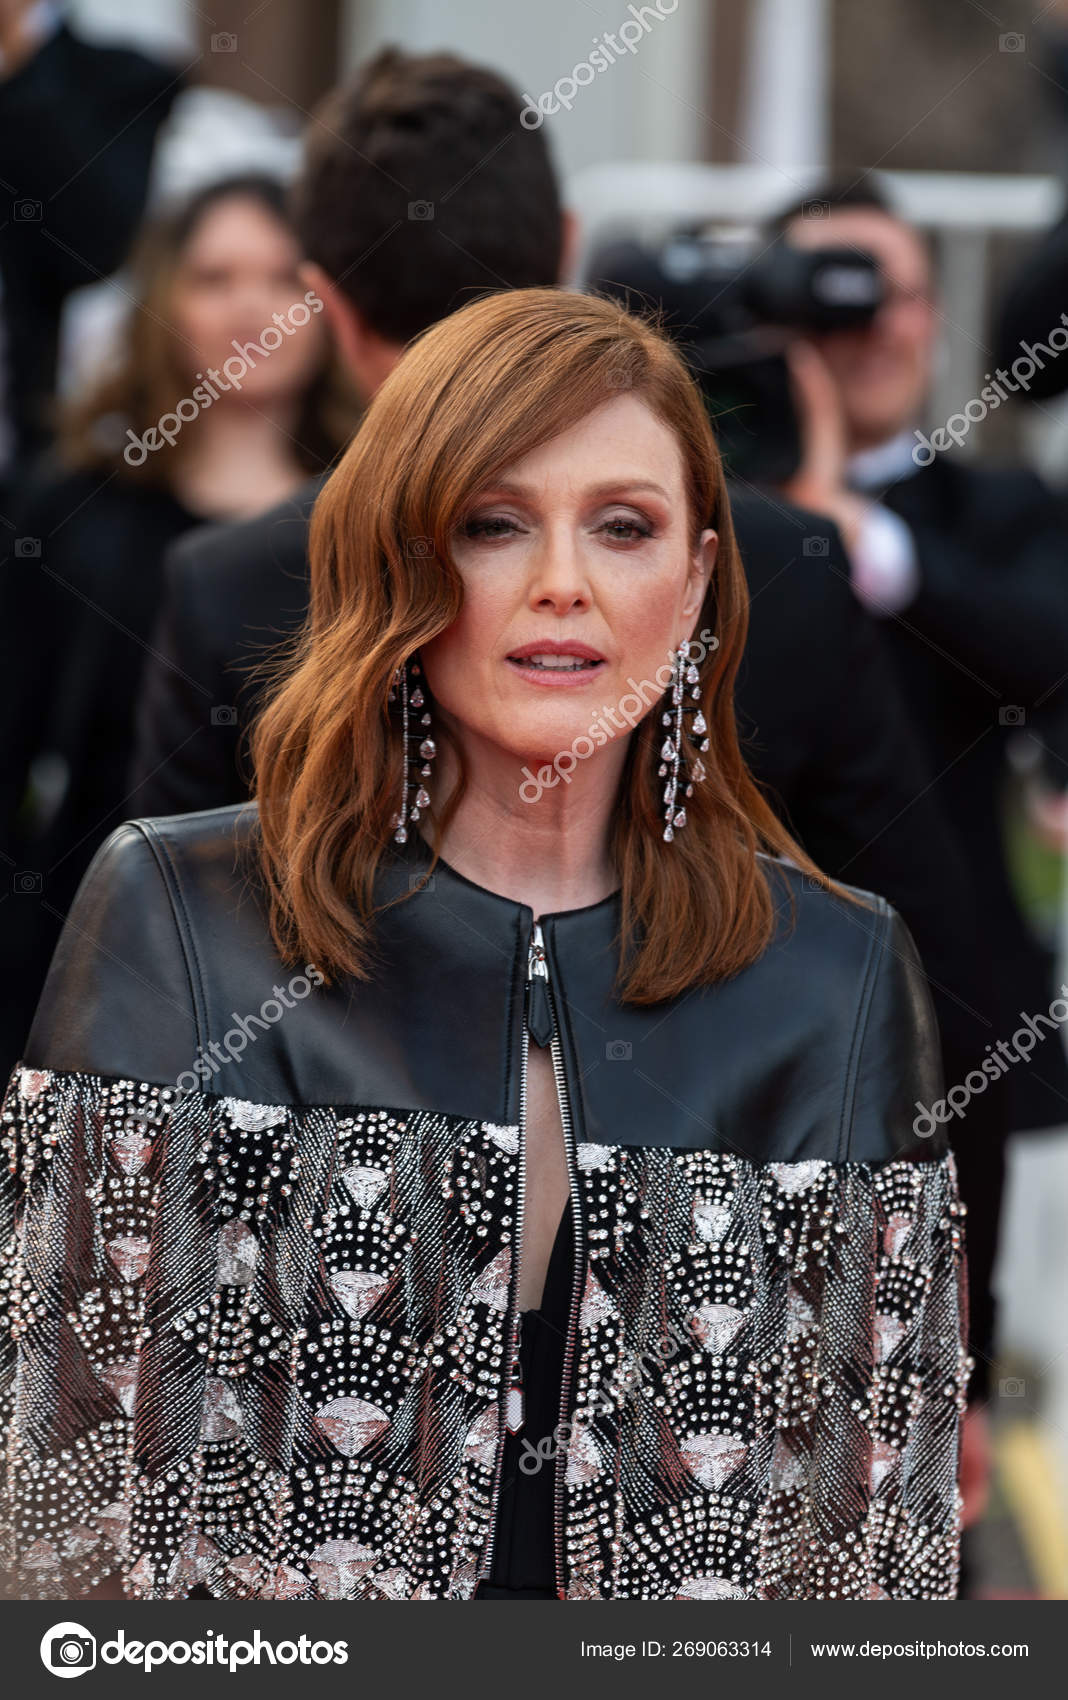 Cannes France May 2019 Julianne Moore Attends Screening Les